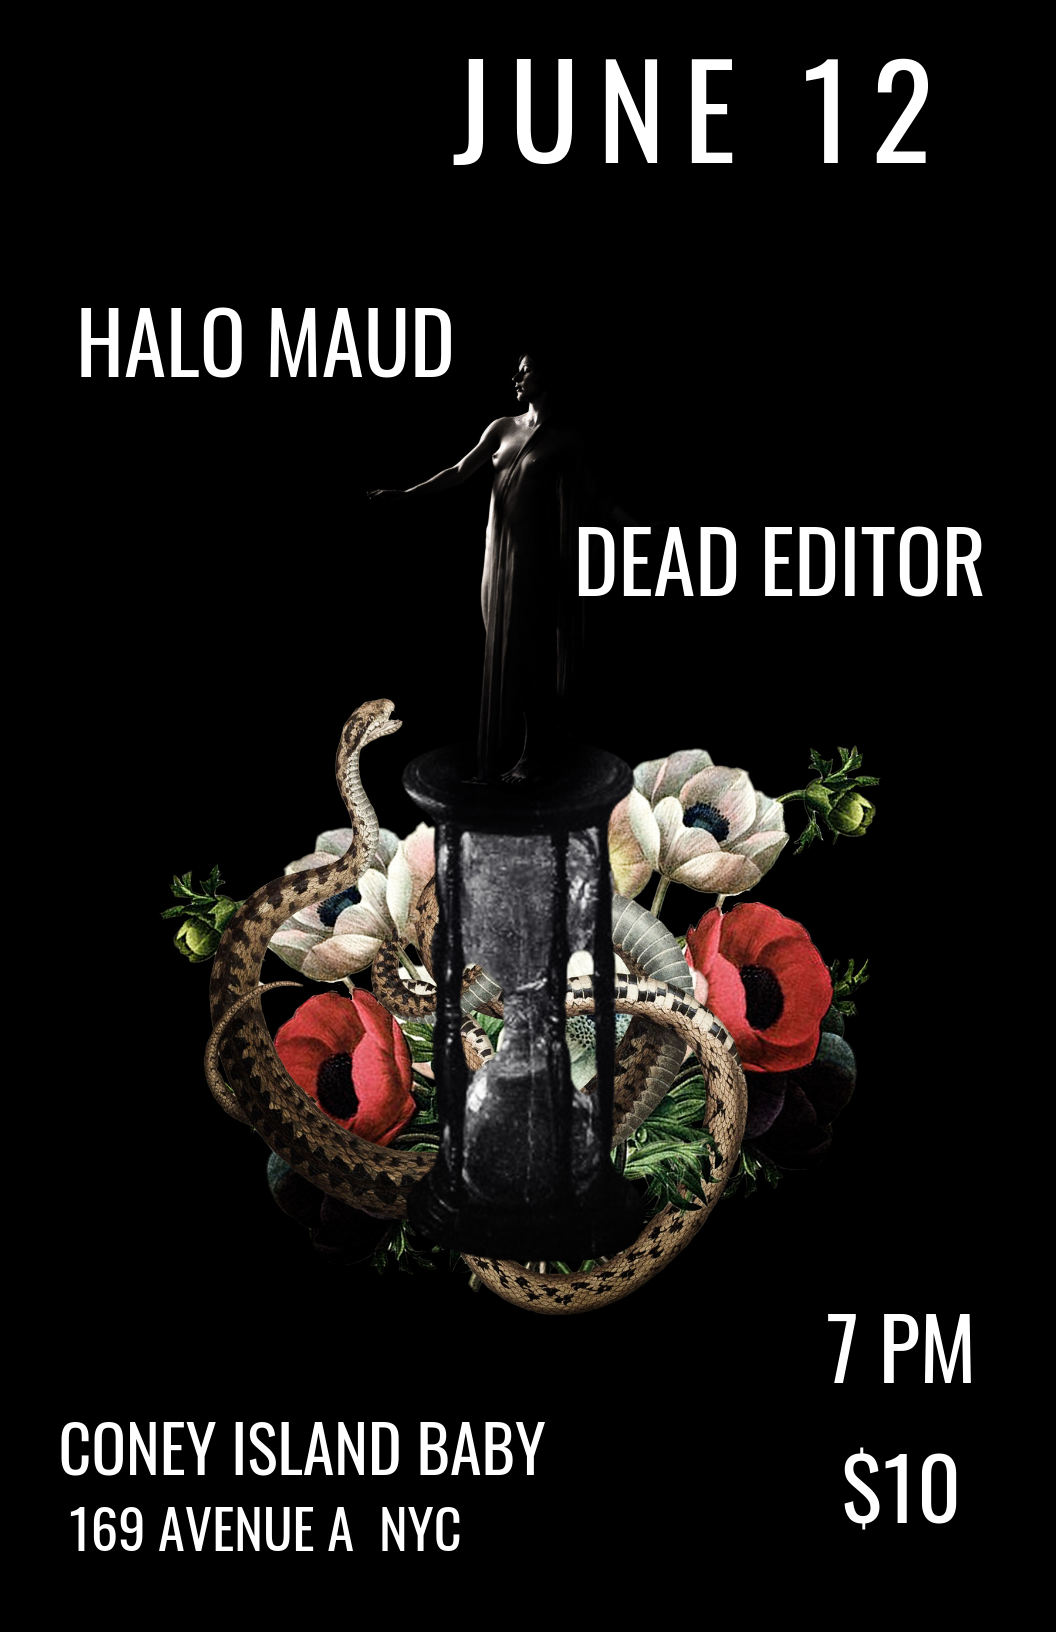 dead editor halo maud version 2 flyer.png